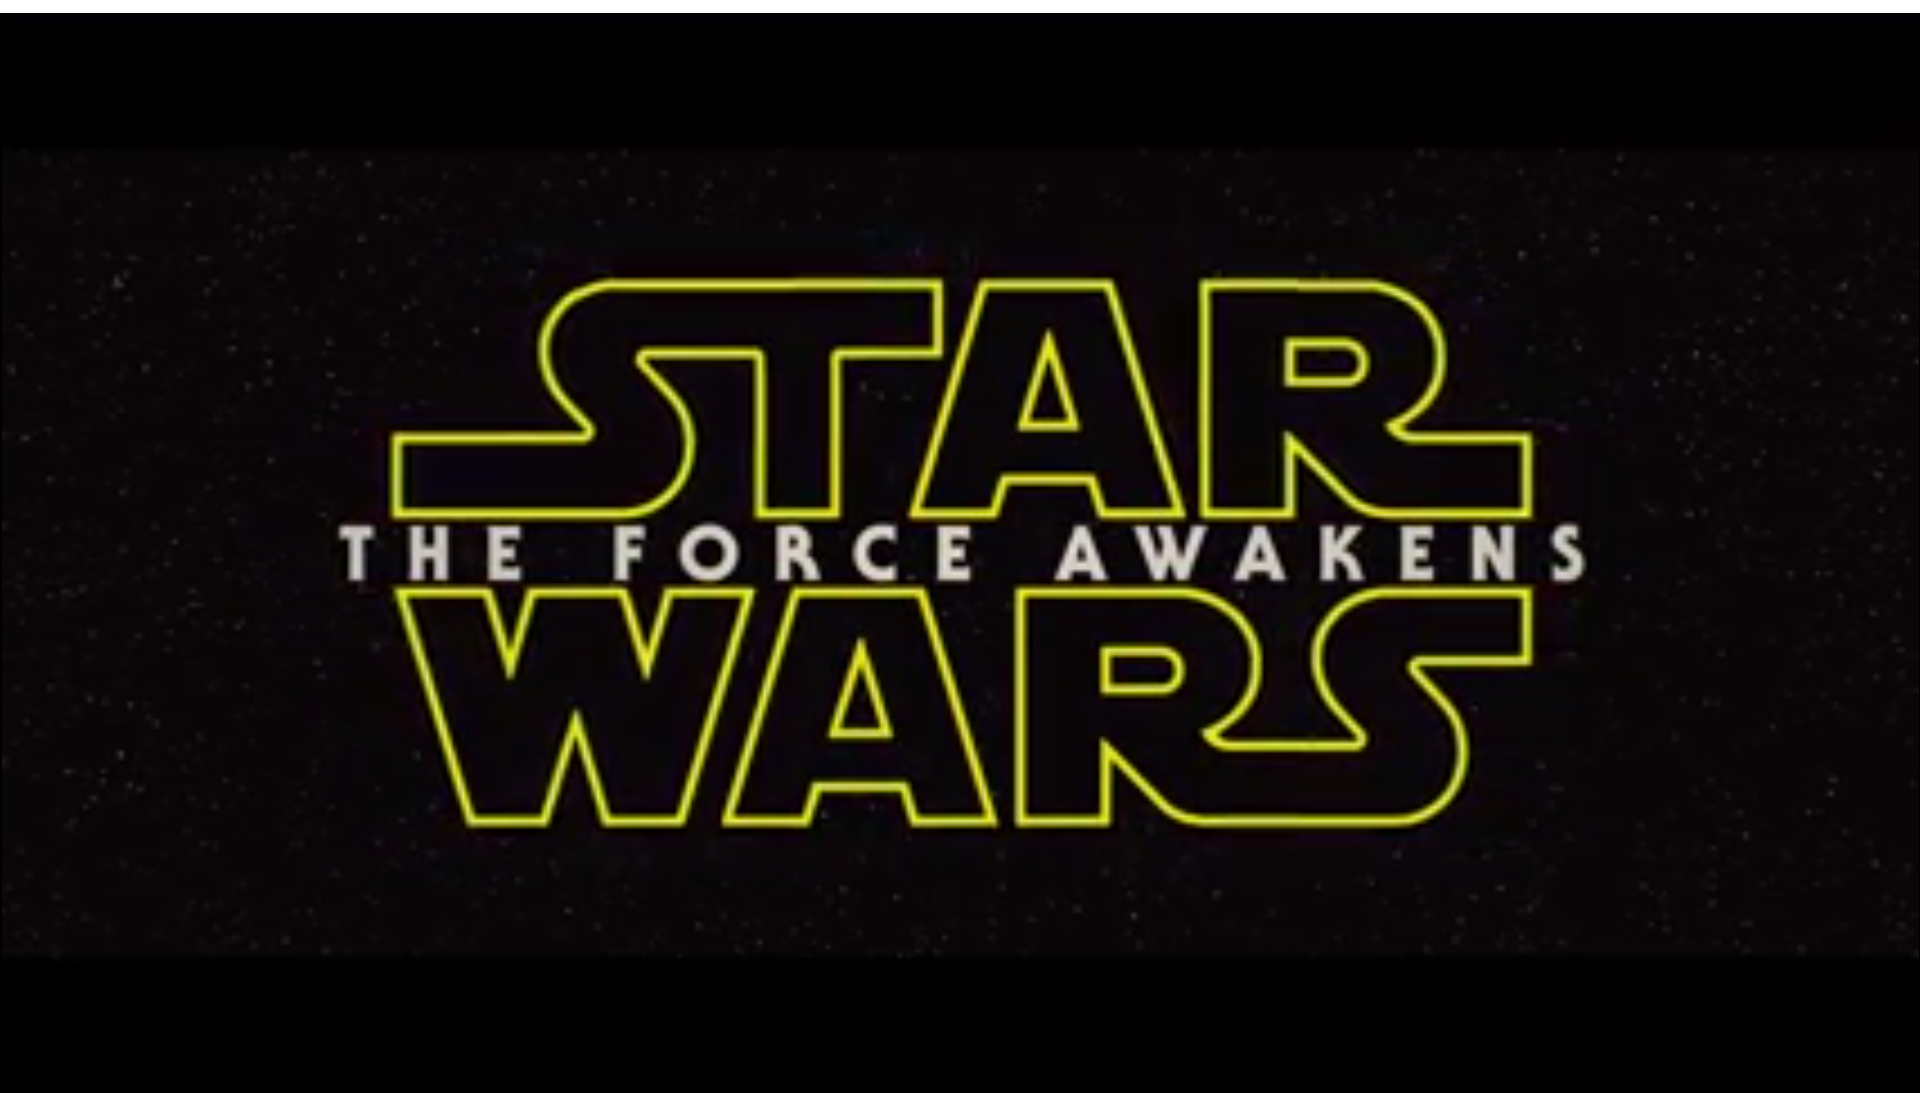 Official Star Wars VII Trailer [Video]